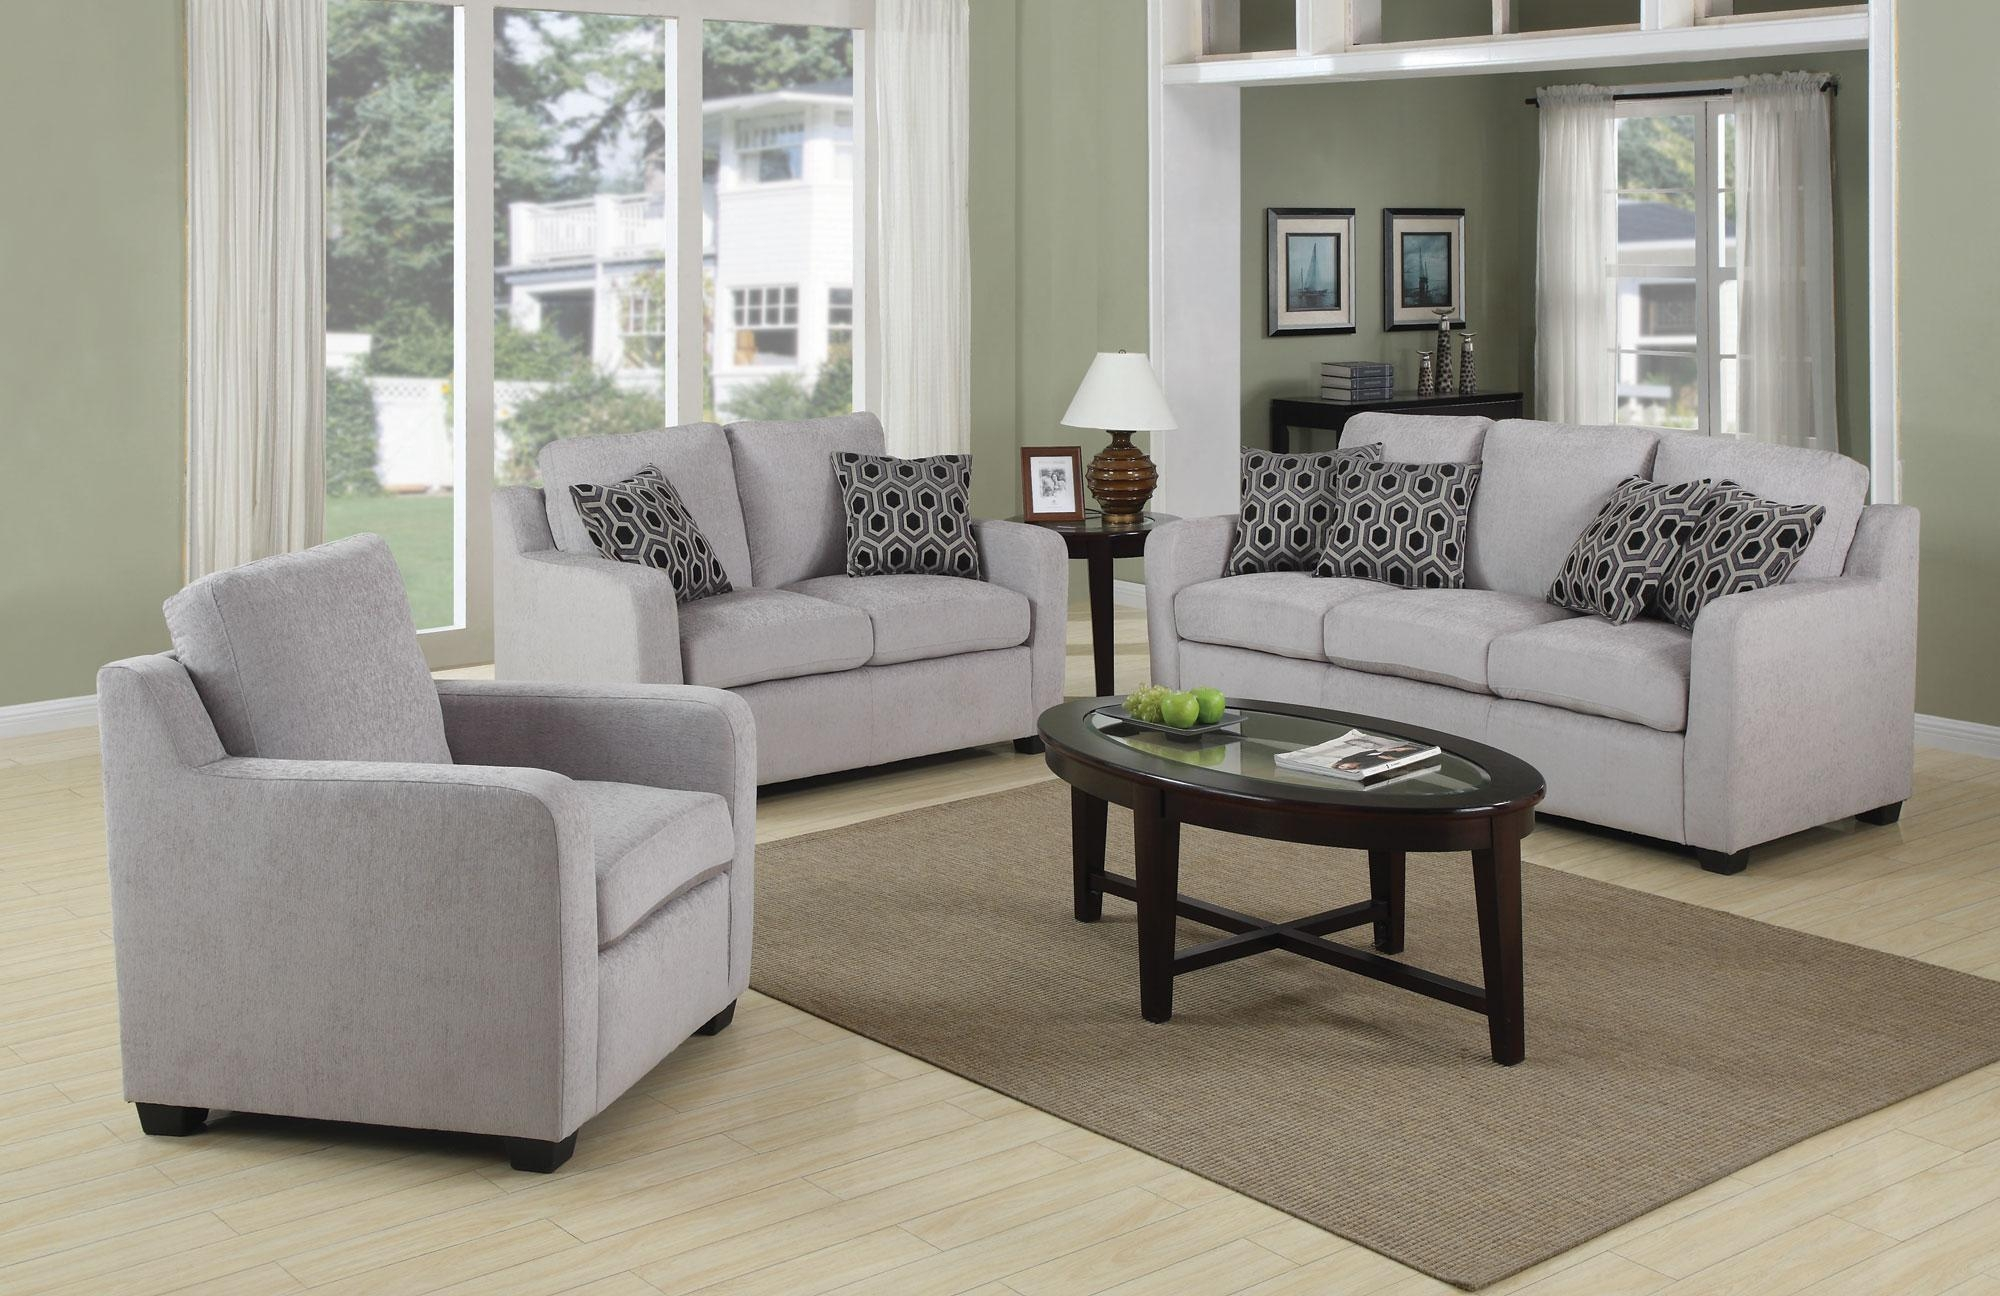 Blue Gray Sofa | Sofa Gallery | Kengire Regarding Blue Gray Sofas (View 7 of 20)